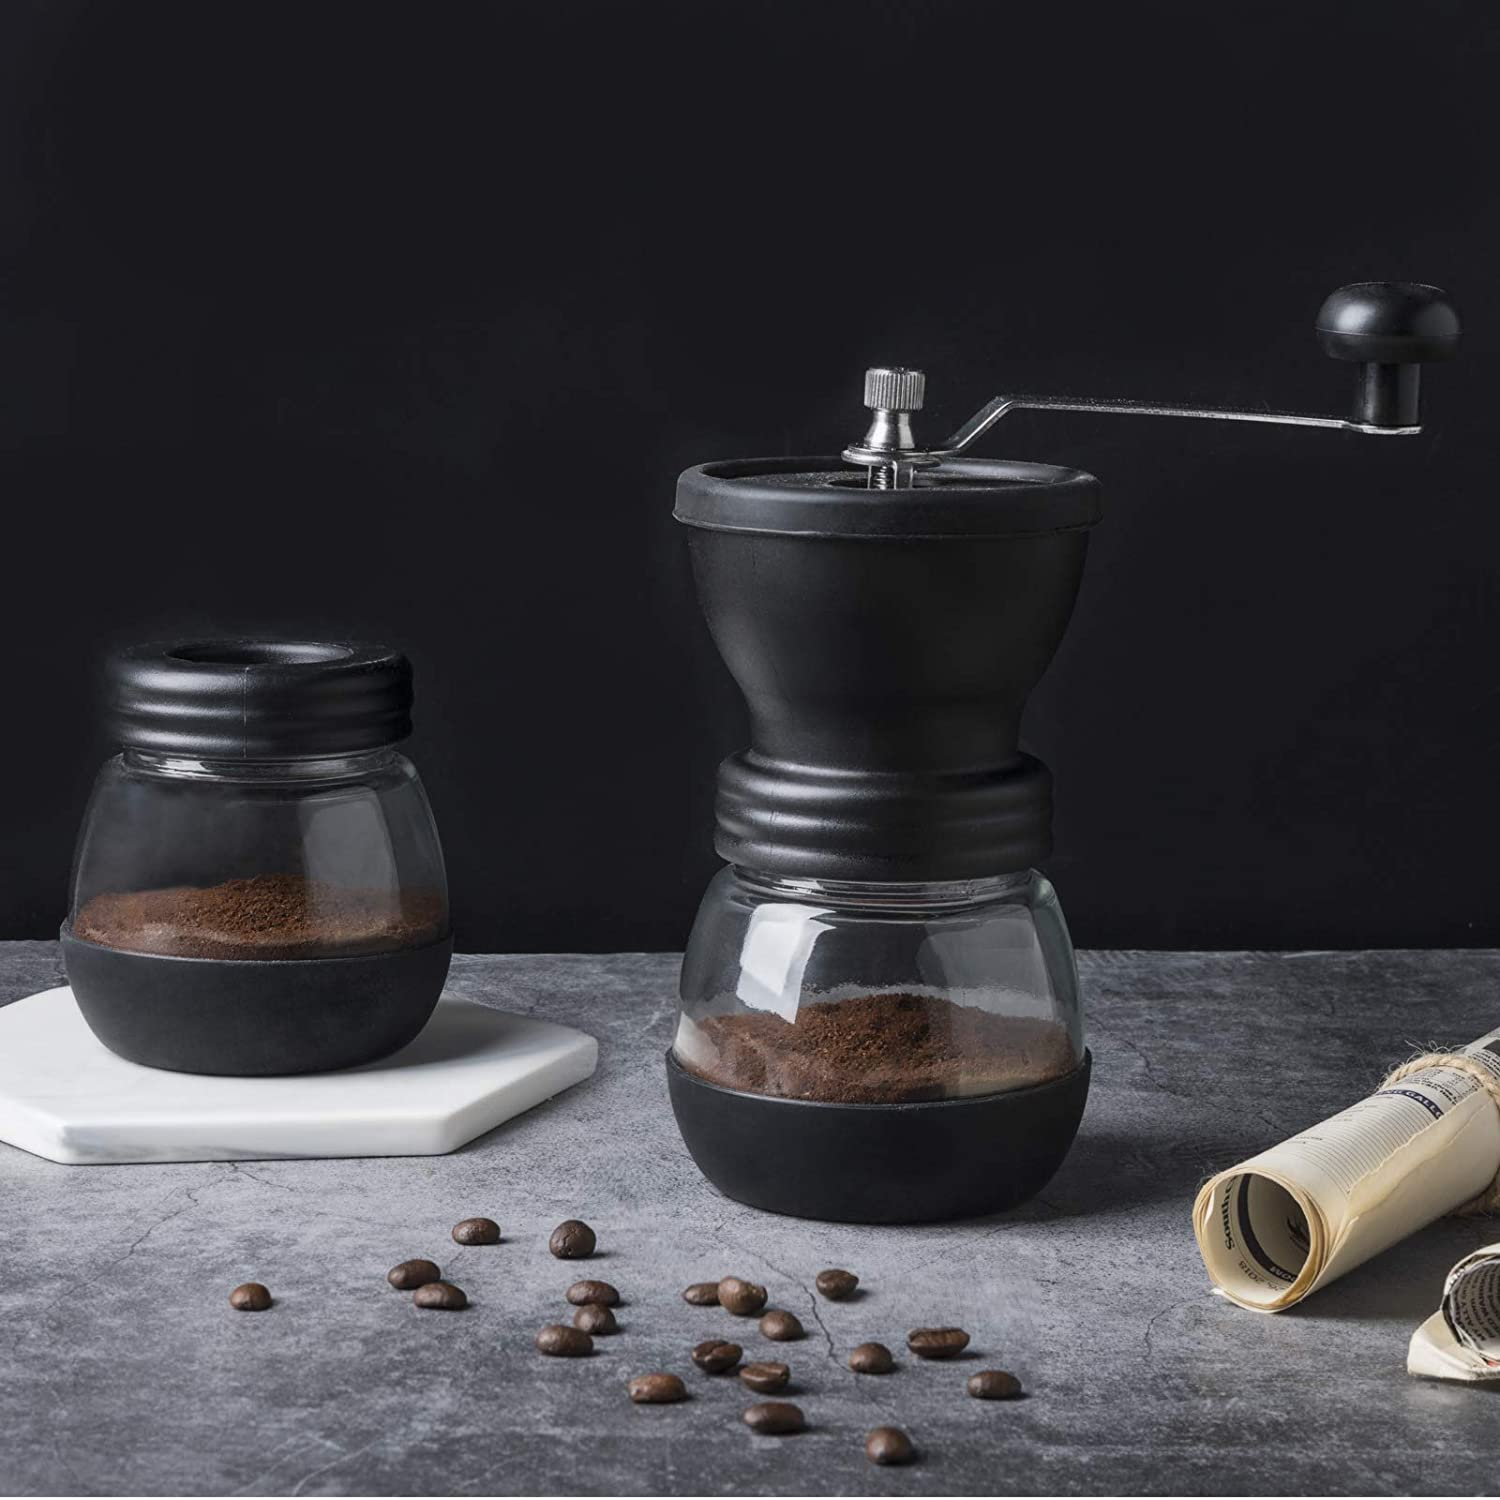 Home Commercial Italian Hand Ceramic Burr Portable Espresso Manual Maker Industrial Unlimited adjustable Mill Coffee Grinder